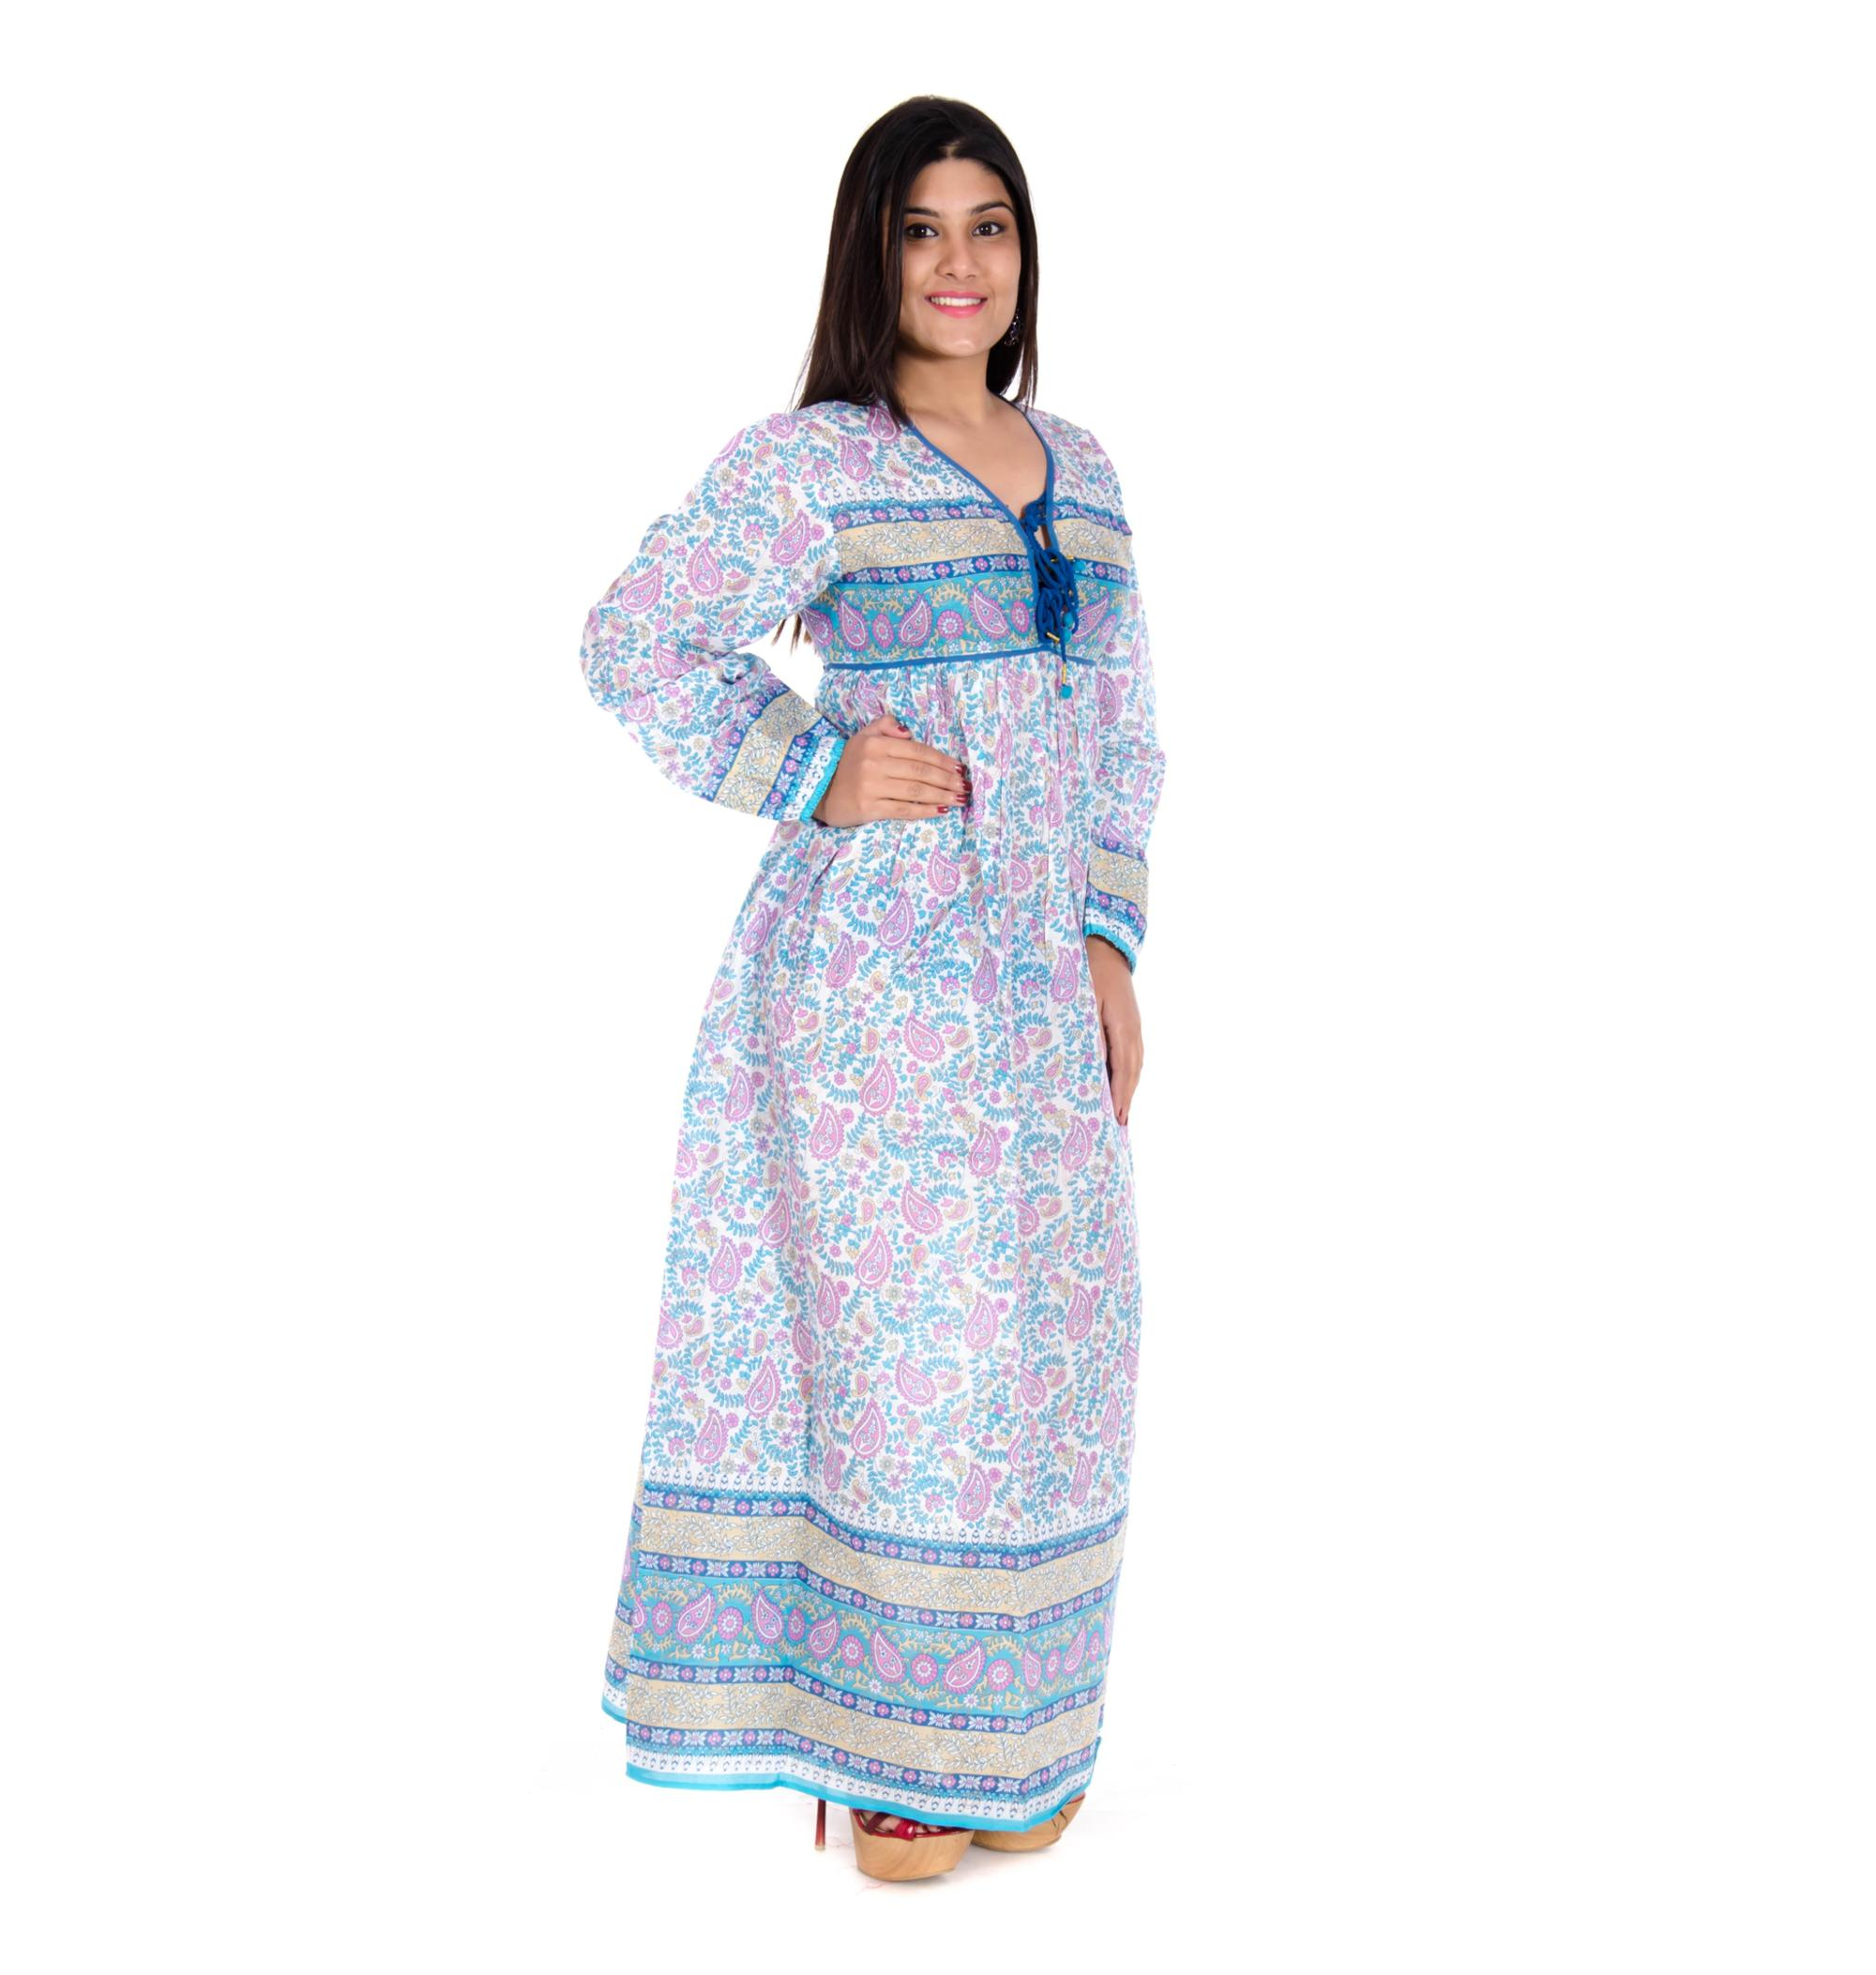 exquisite style highly coveted range of undefeated x 100% Cotton Maxi Gown With Kery Print Blue Pink Colour - Buy Cotton Kery  Print Maxi Dress,100% Cotton Maxi Dress,100% Cotton Maxi Dress Product on  ...